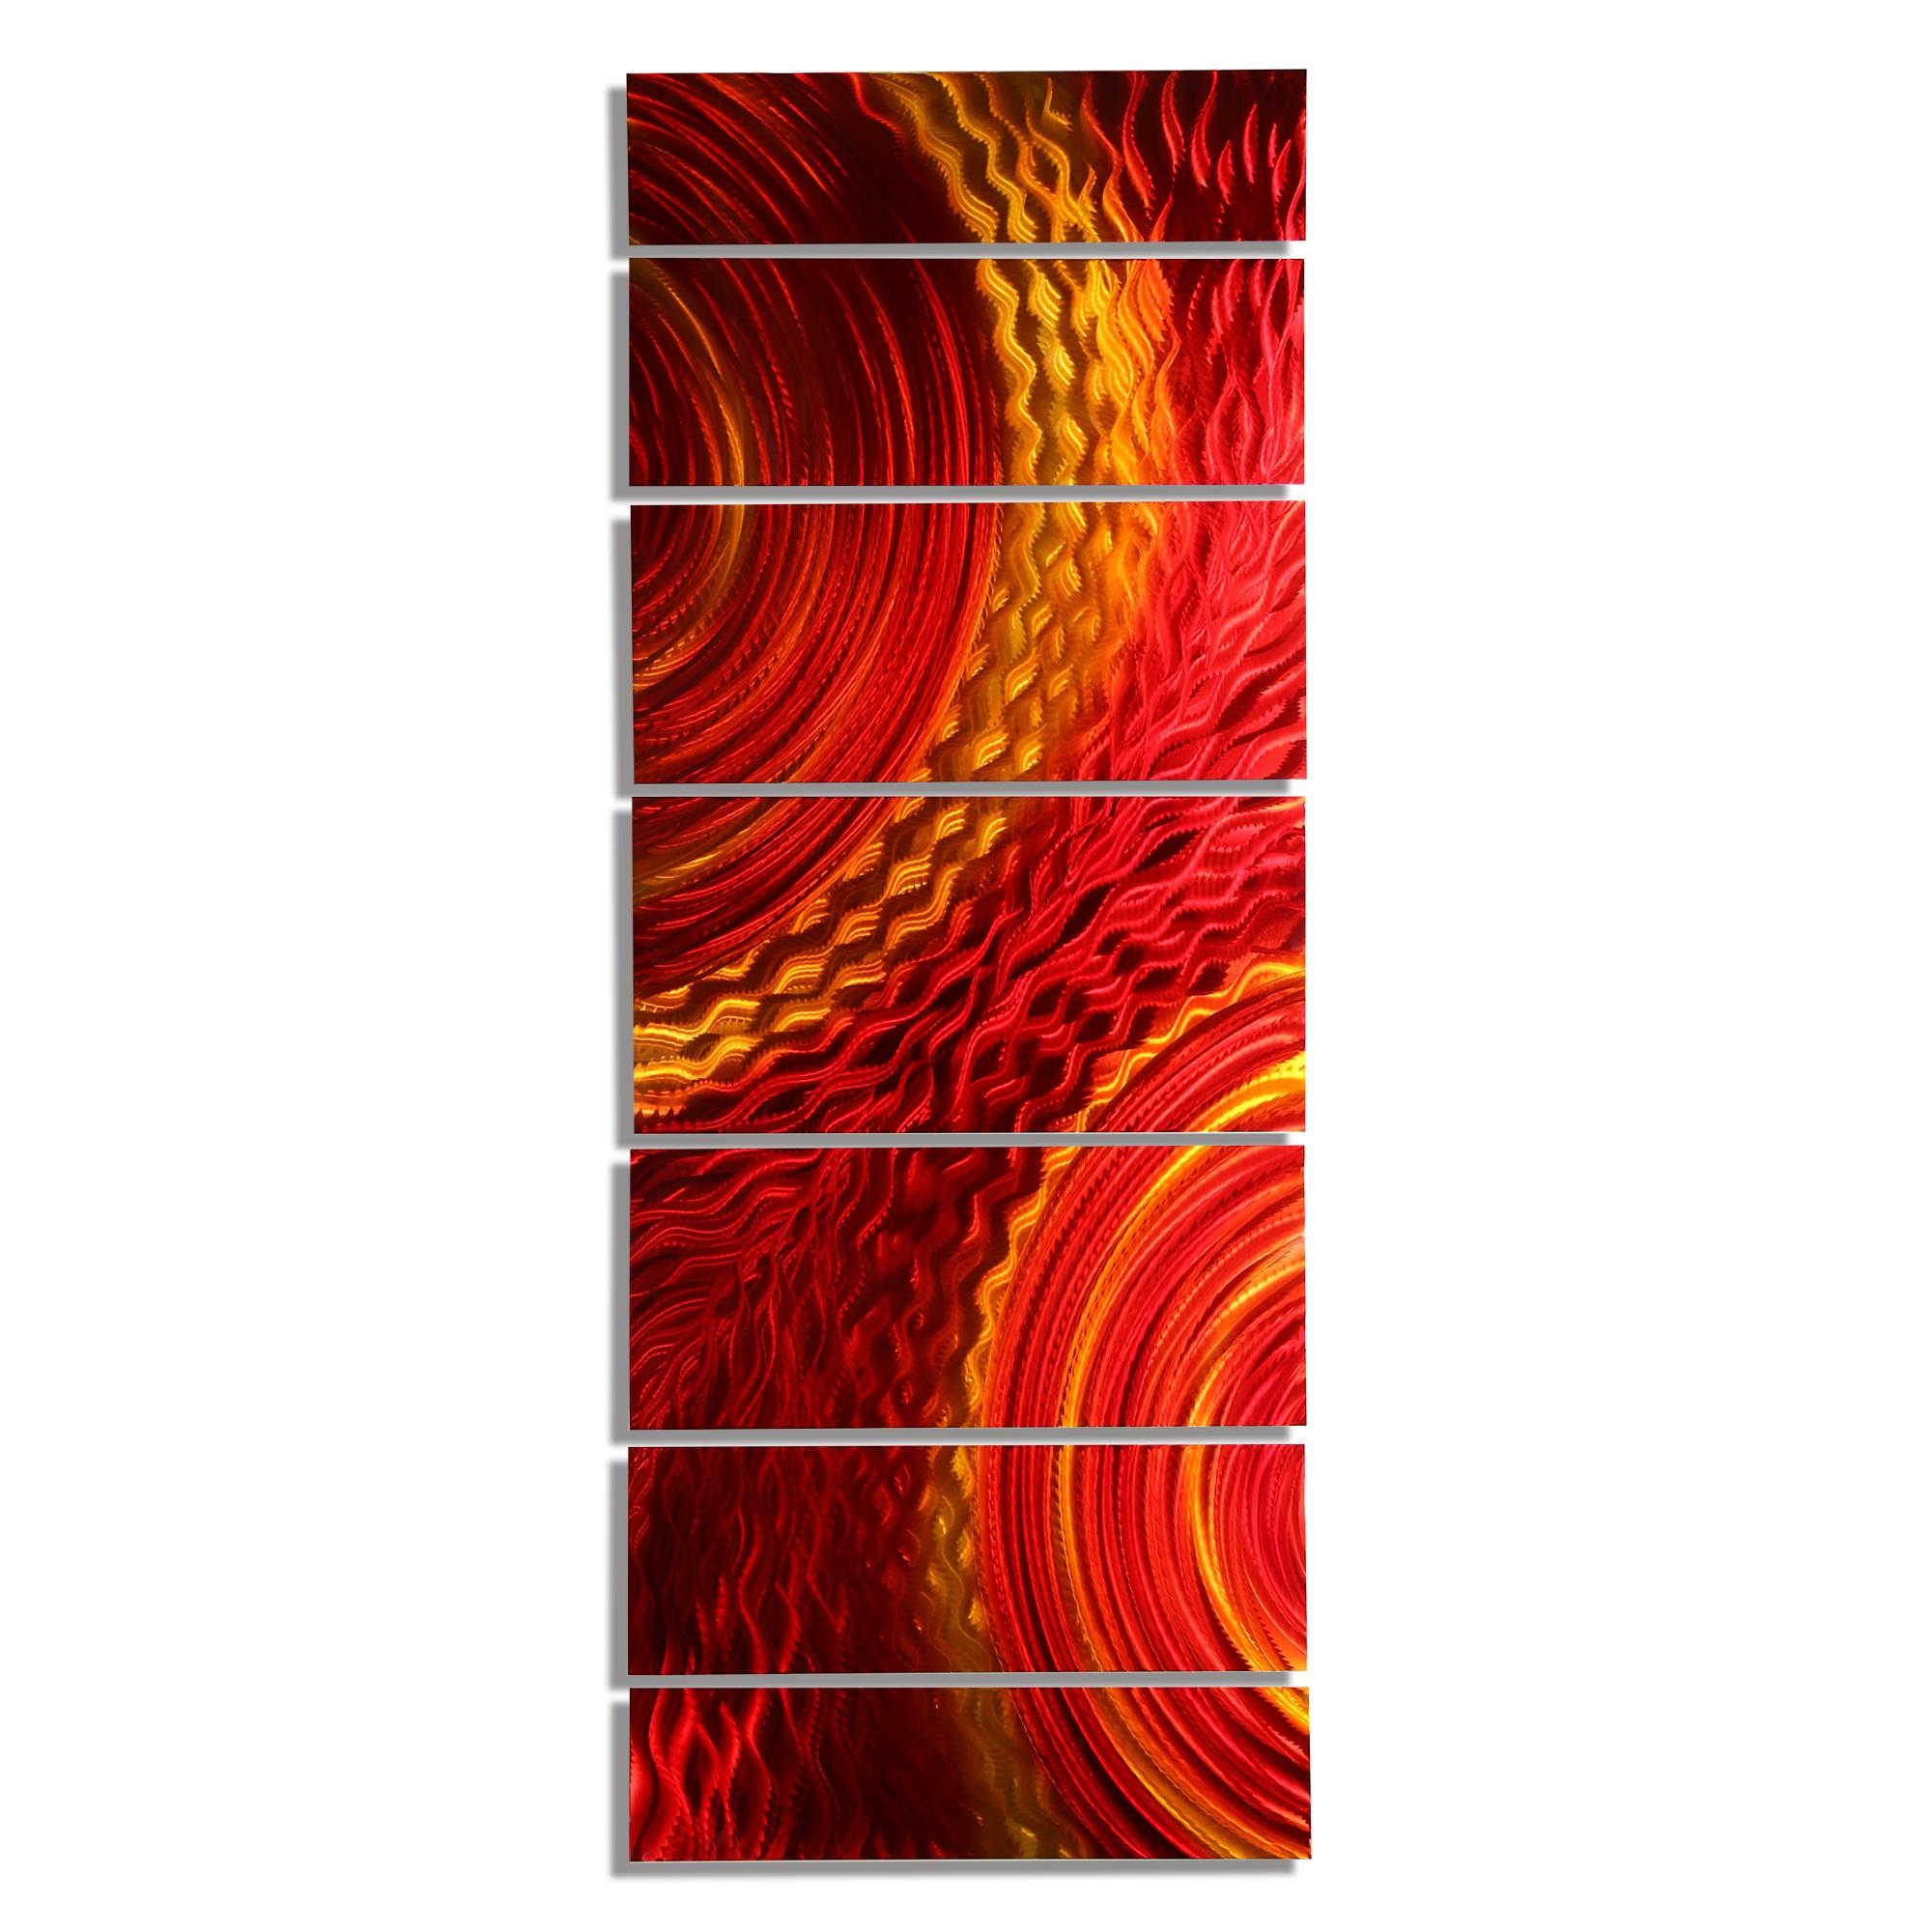 Harvest Moods – Dynamic Red & Gold Modern Metal Wall Sculpture Inside Rectangular Metal Wall Art (Image 7 of 20)